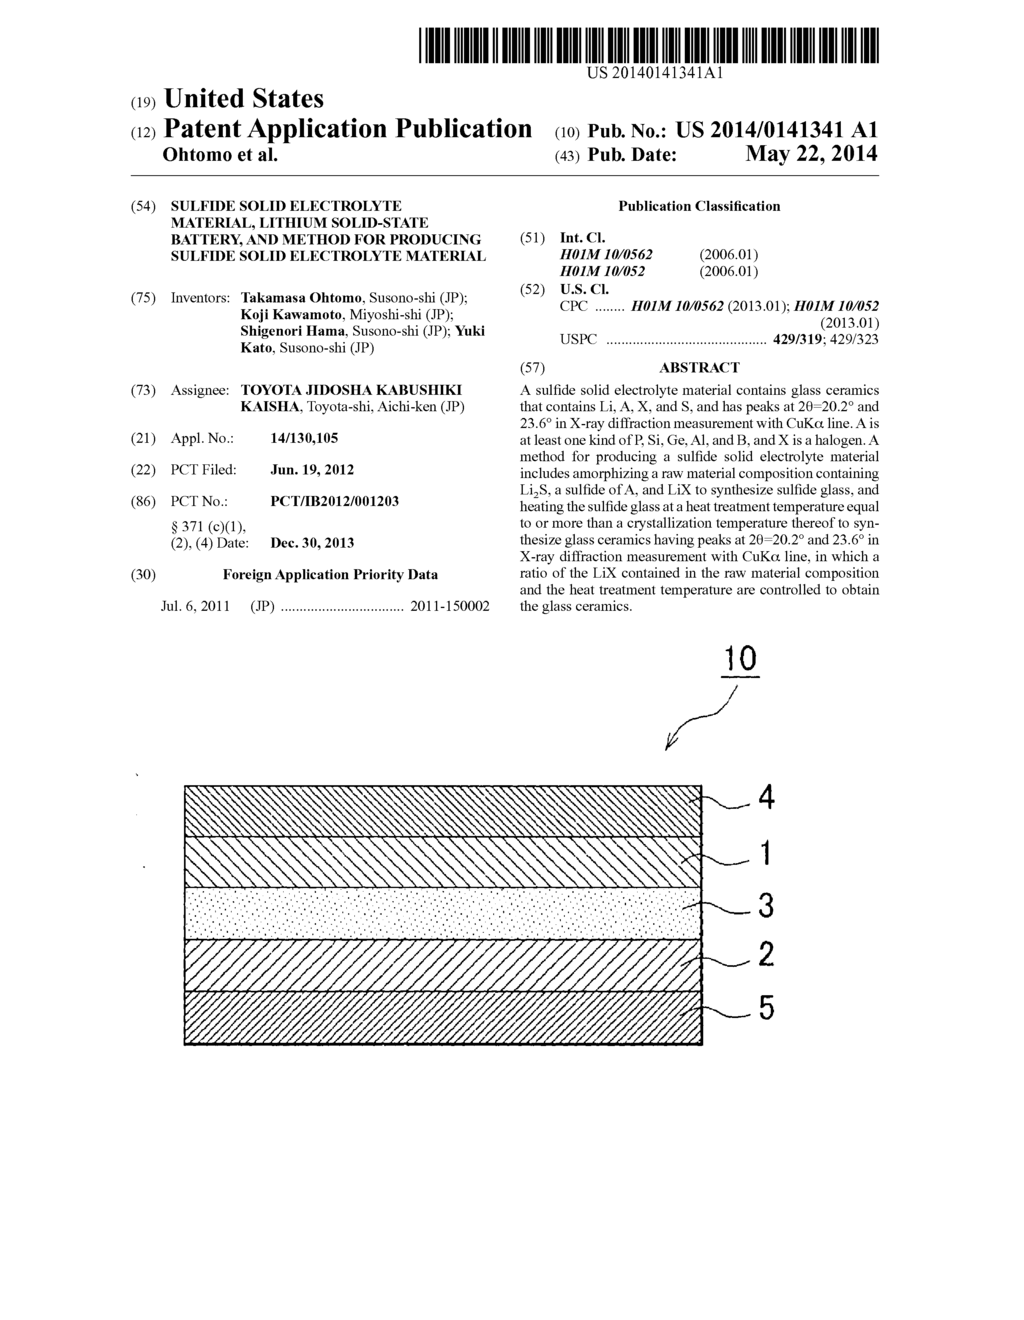 SULFIDE SOLID ELECTROLYTE MATERIAL, LITHIUM SOLID-STATE